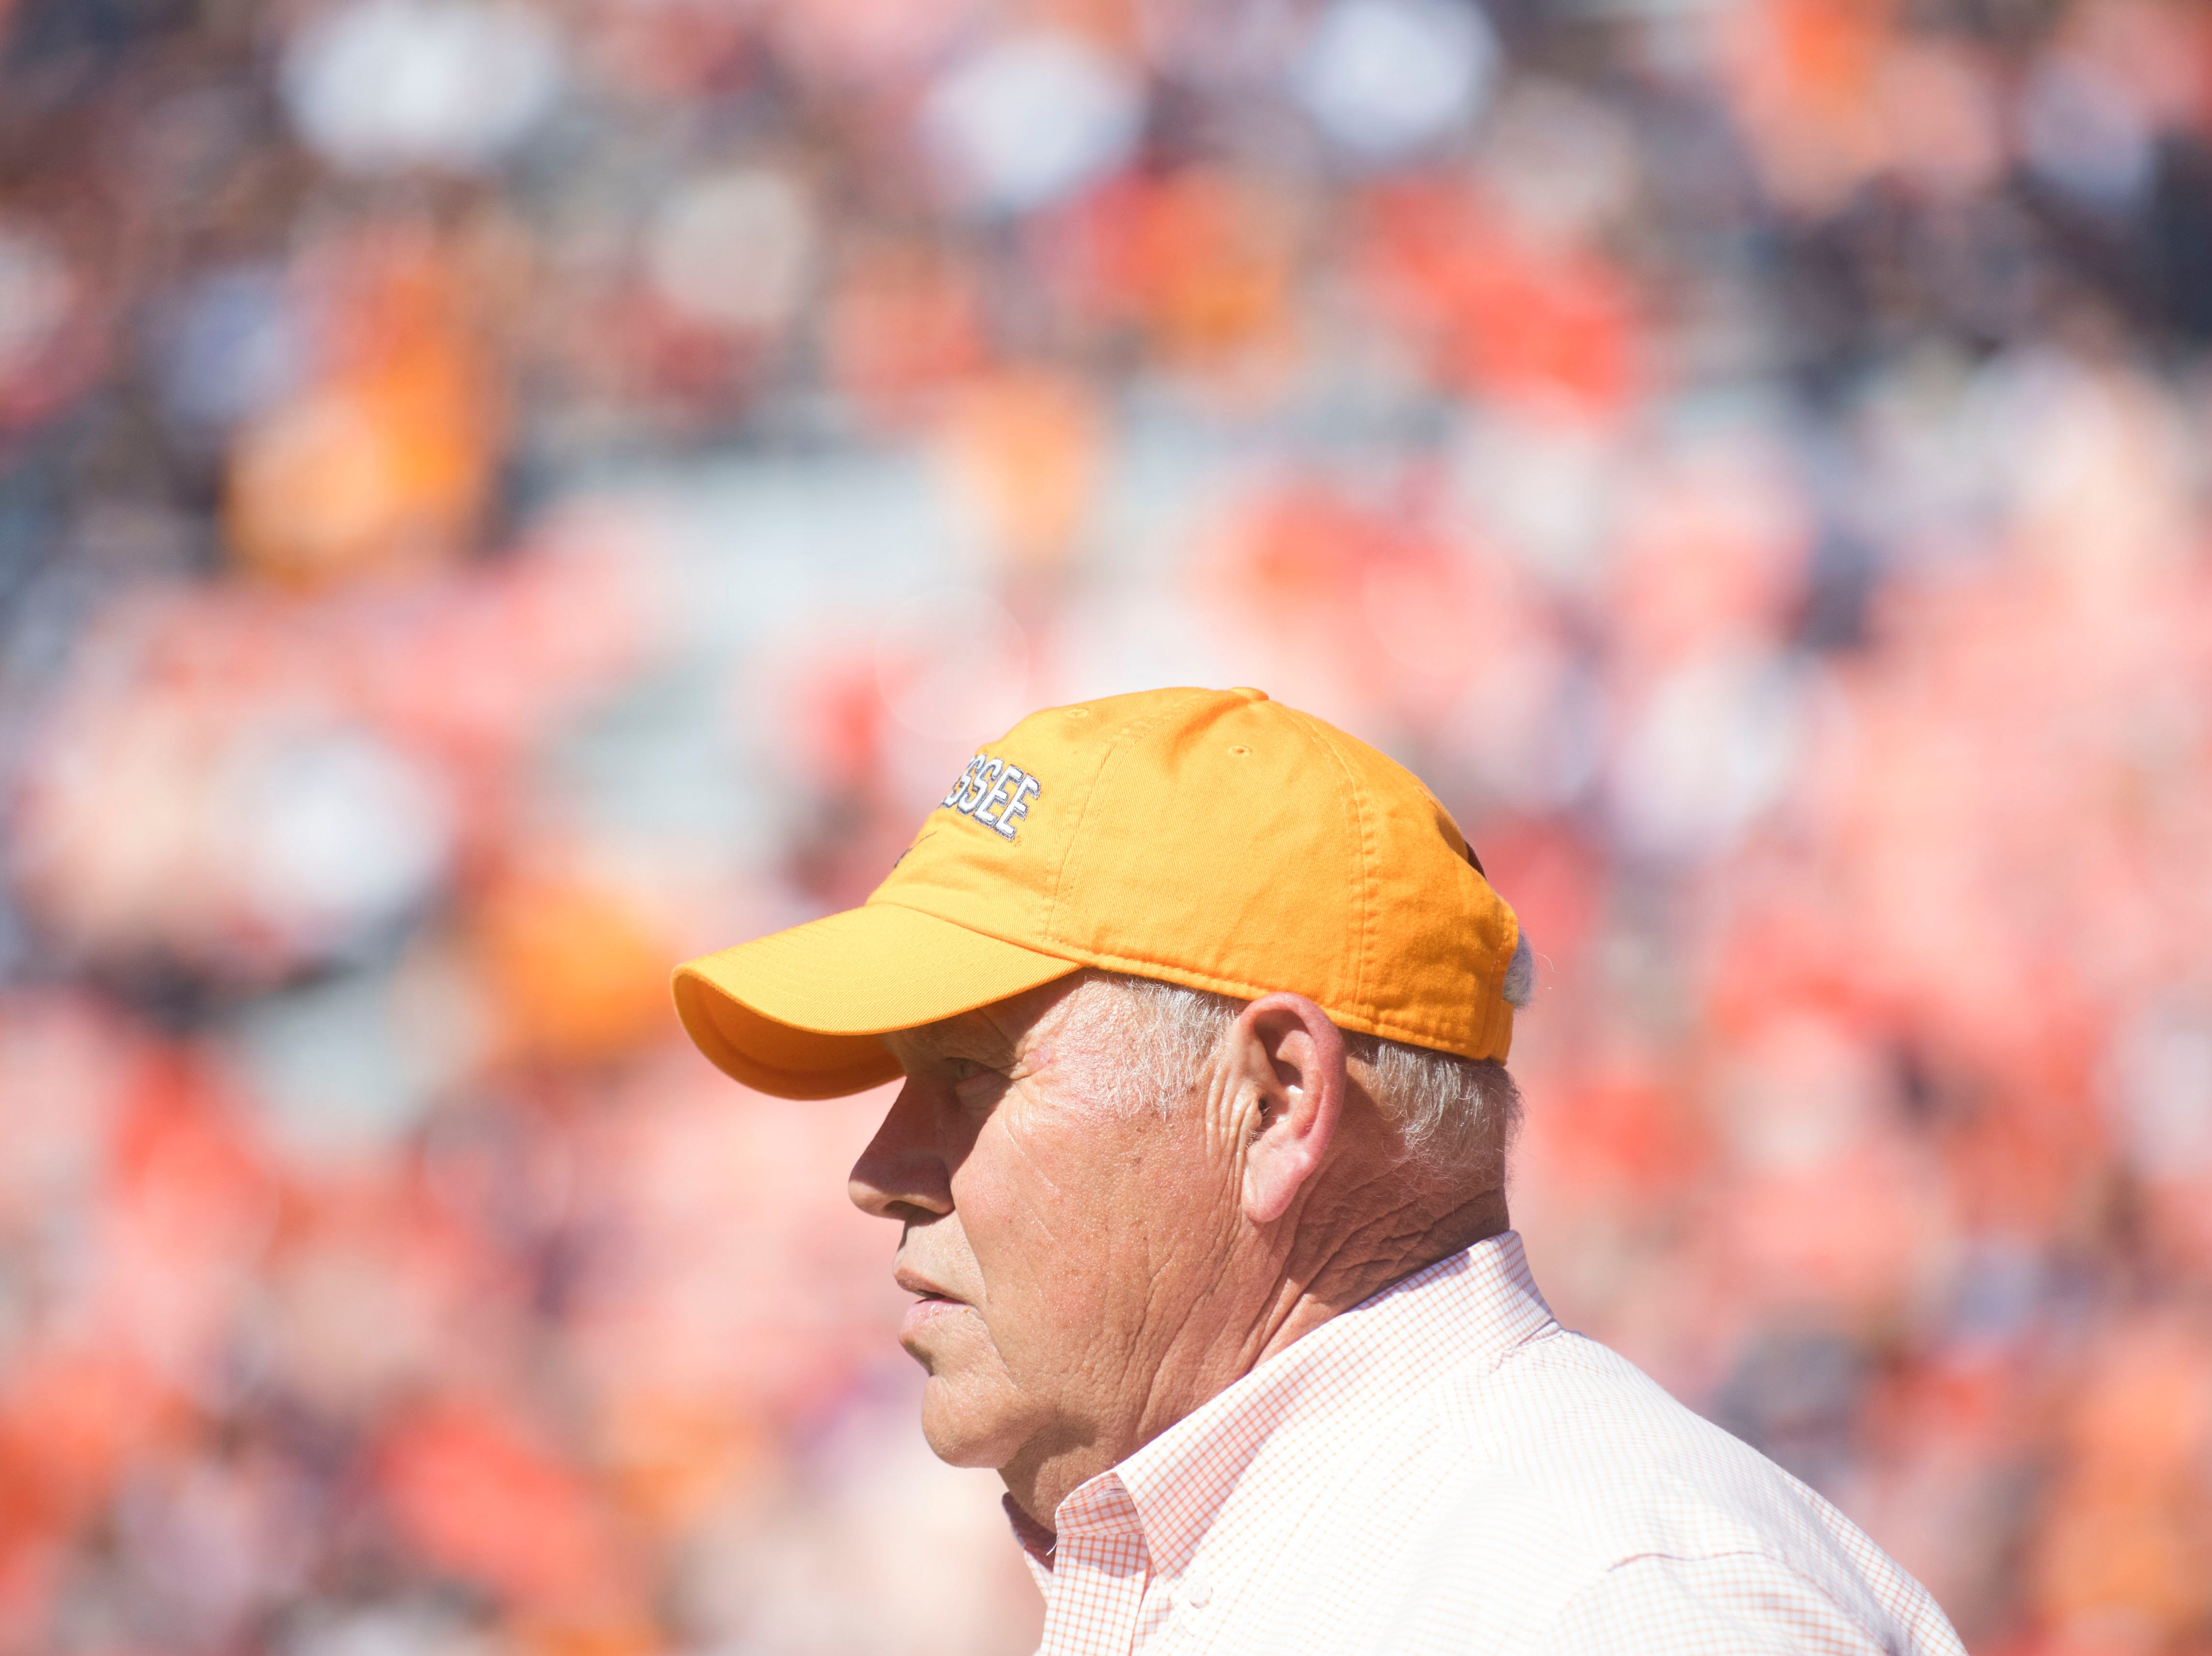 Tennessee Athletic Director Phillip Fulmer watches during a game between Tennessee and Auburn at Jordan-Hare Stadium in Auburn, Ala. Saturday, Oct. 13, 2018. Tennessee defeated Auburn 30-24.